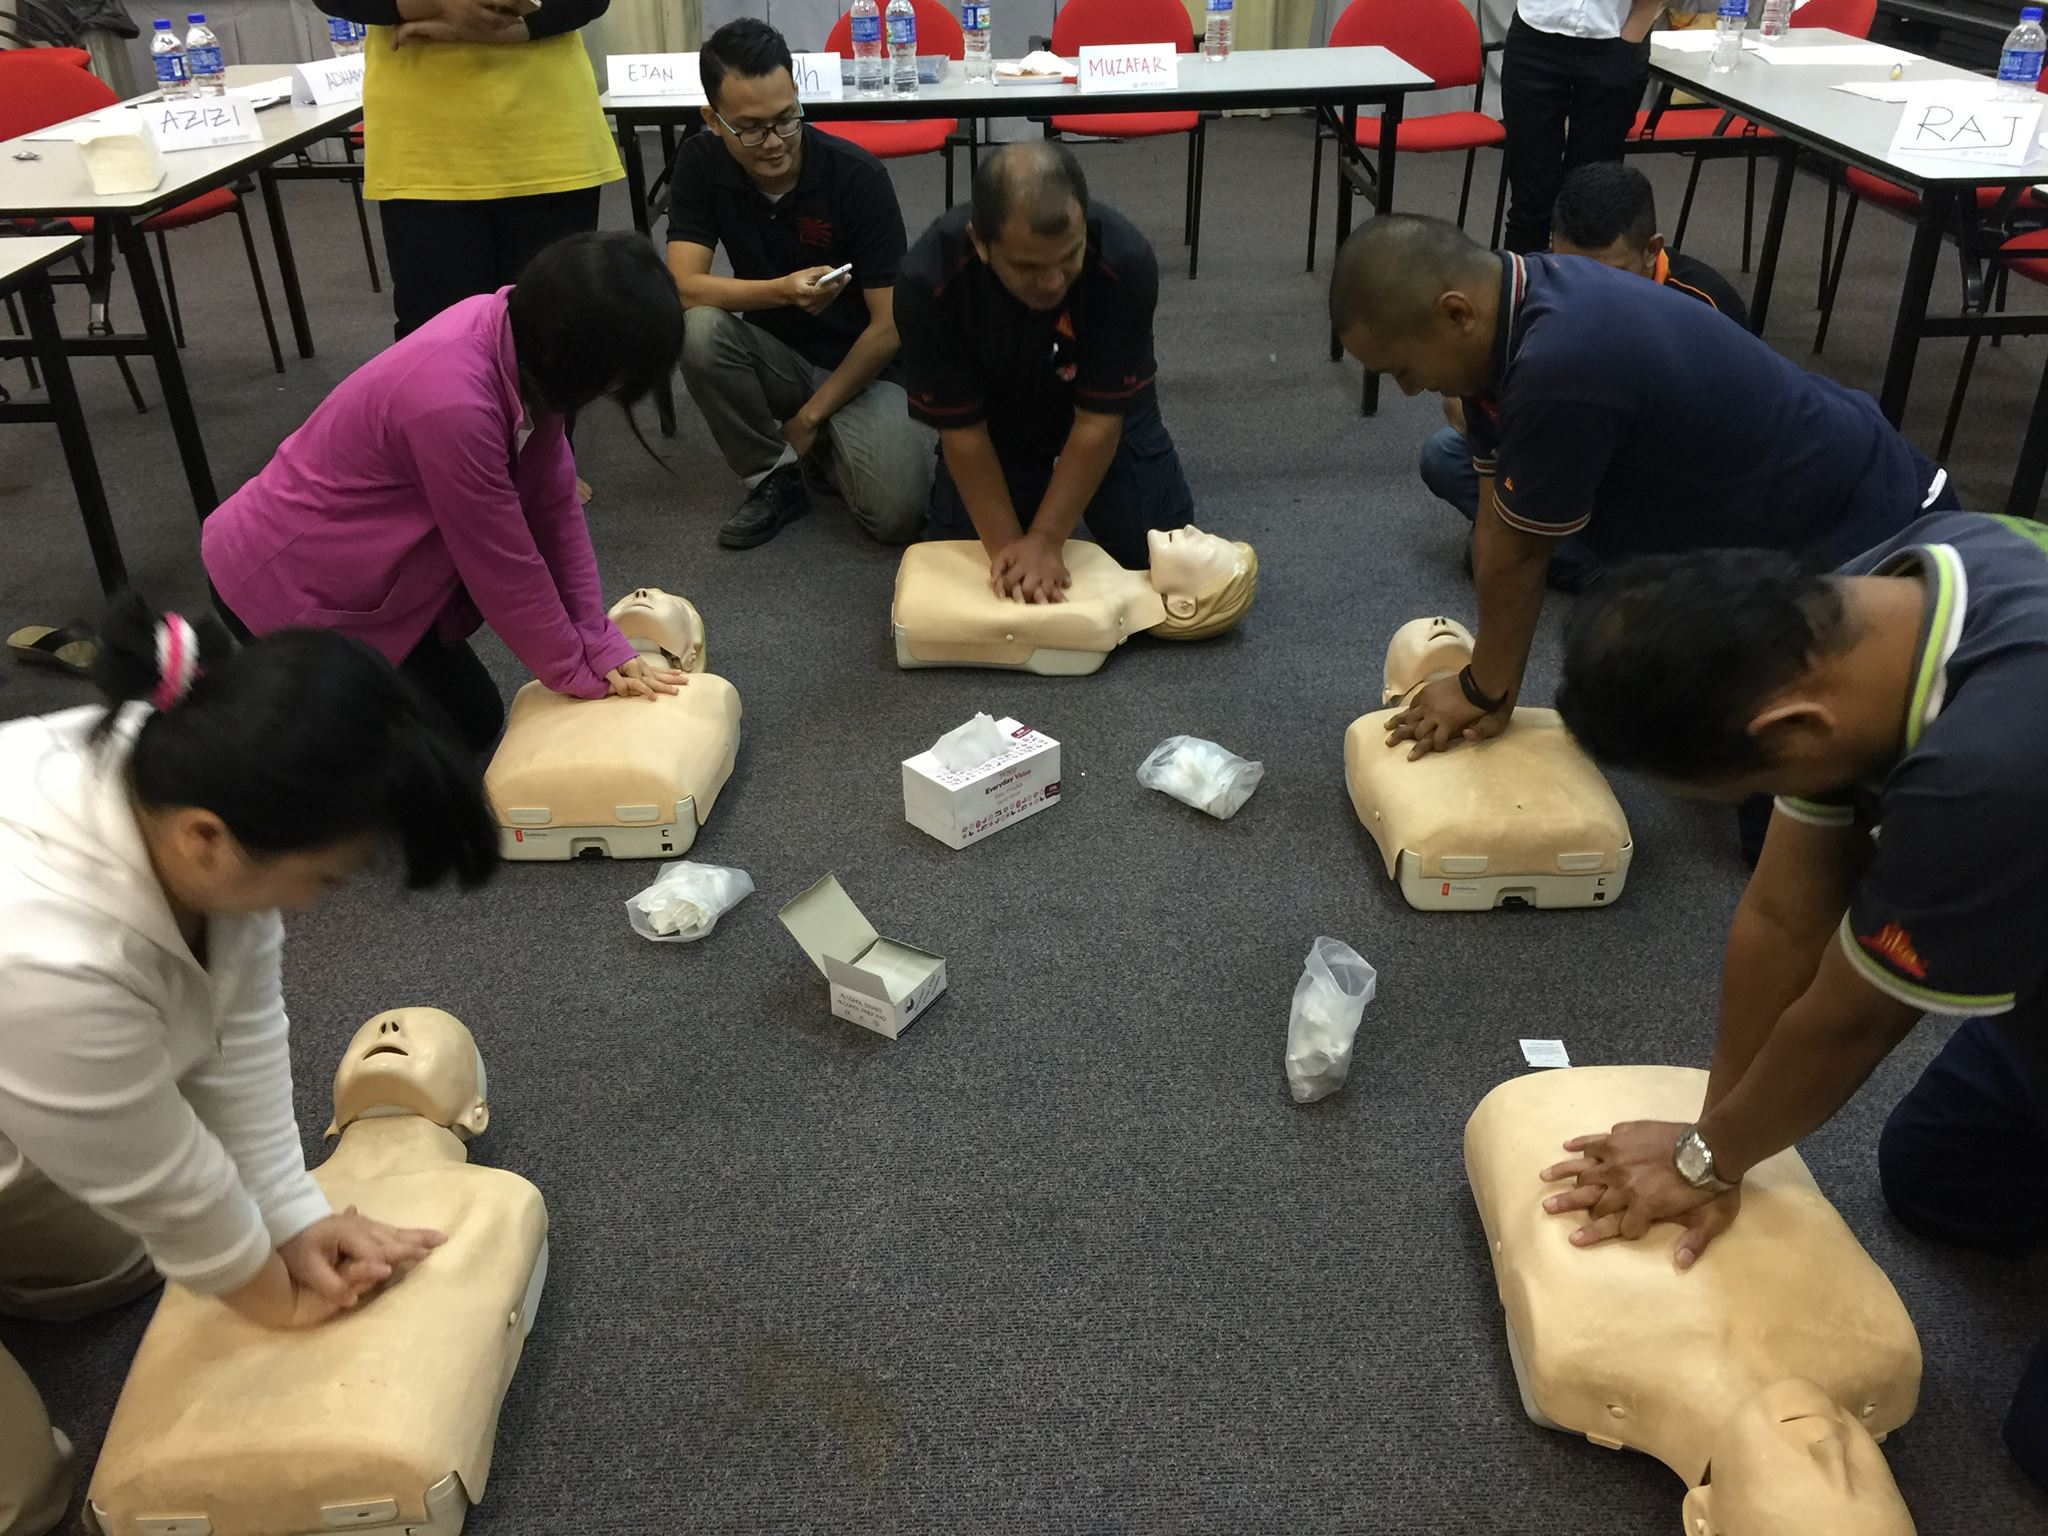 Get trained by the Leading Training Providers in First Aid, CPR & AED and stay confident in saving any victim from death.